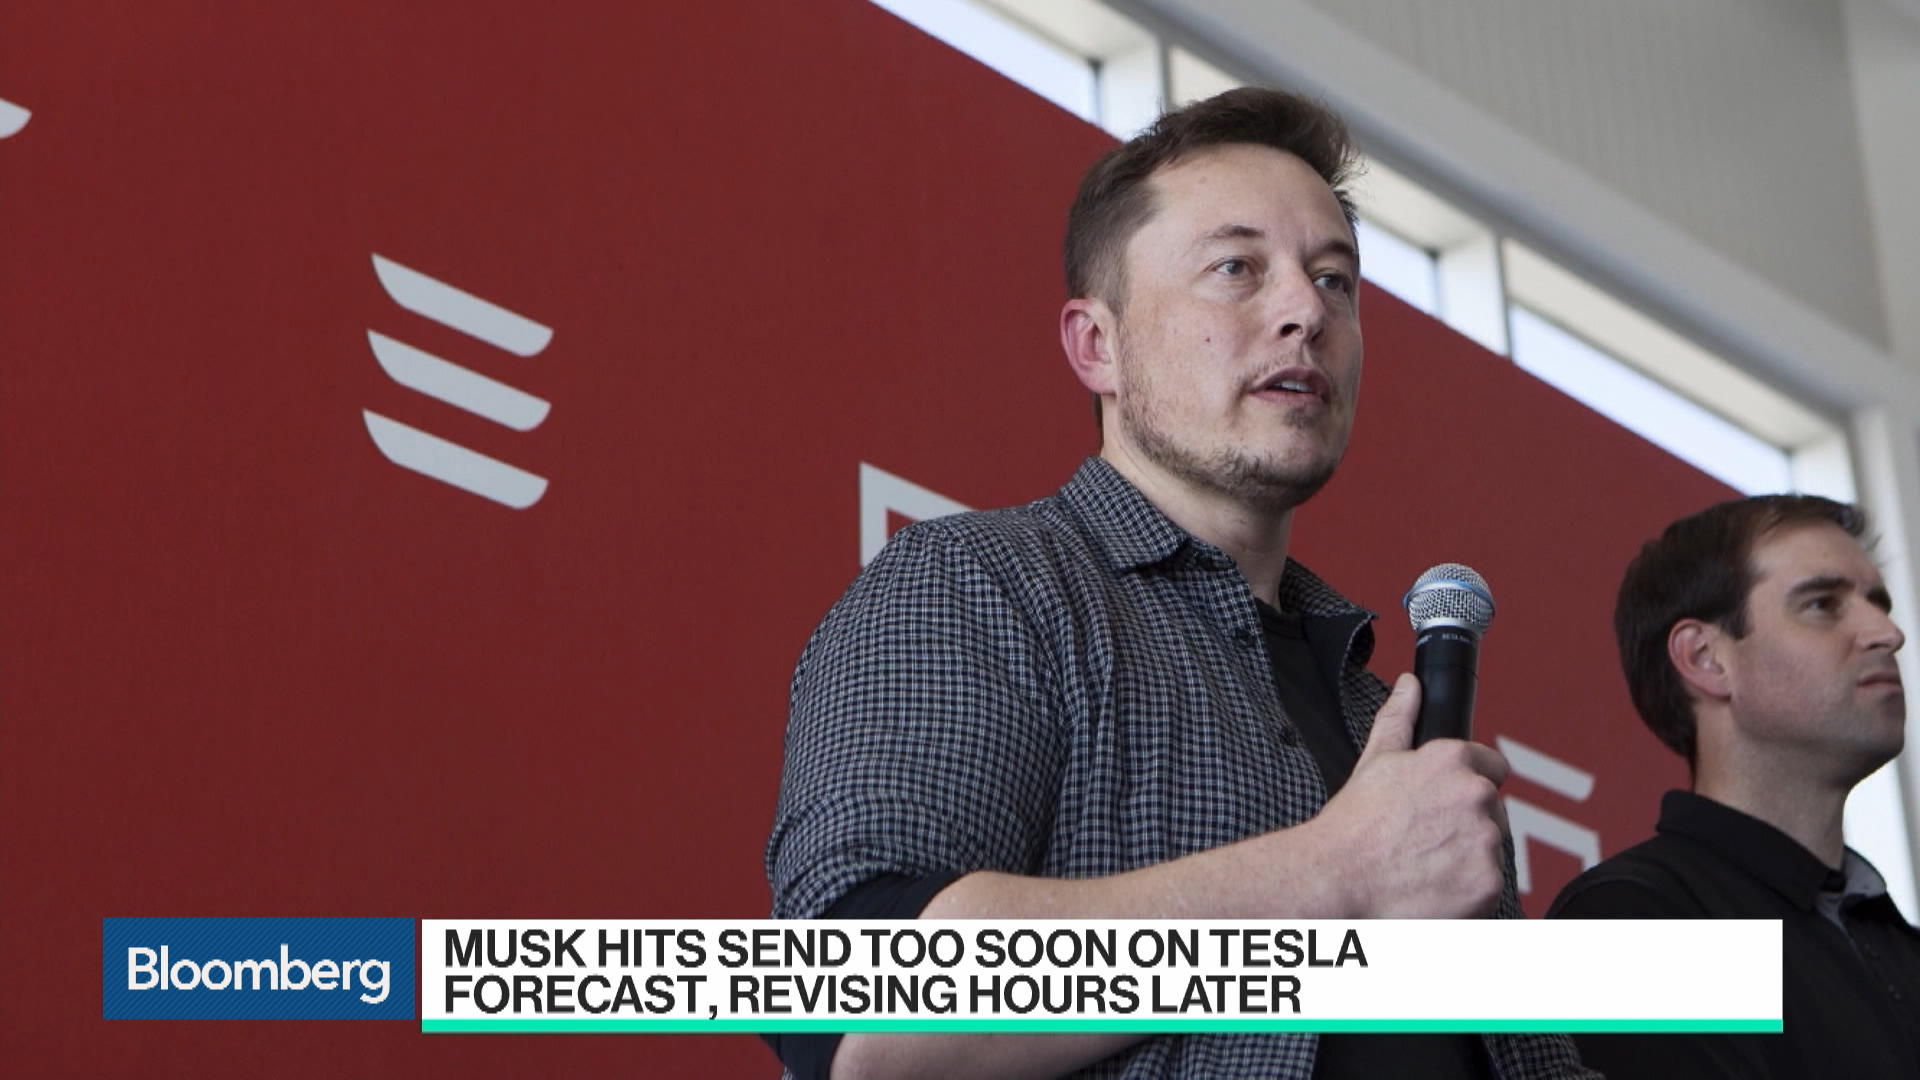 Wall Street Is Focusing Too Much on Tesla's Production, Analyst Keeney Says